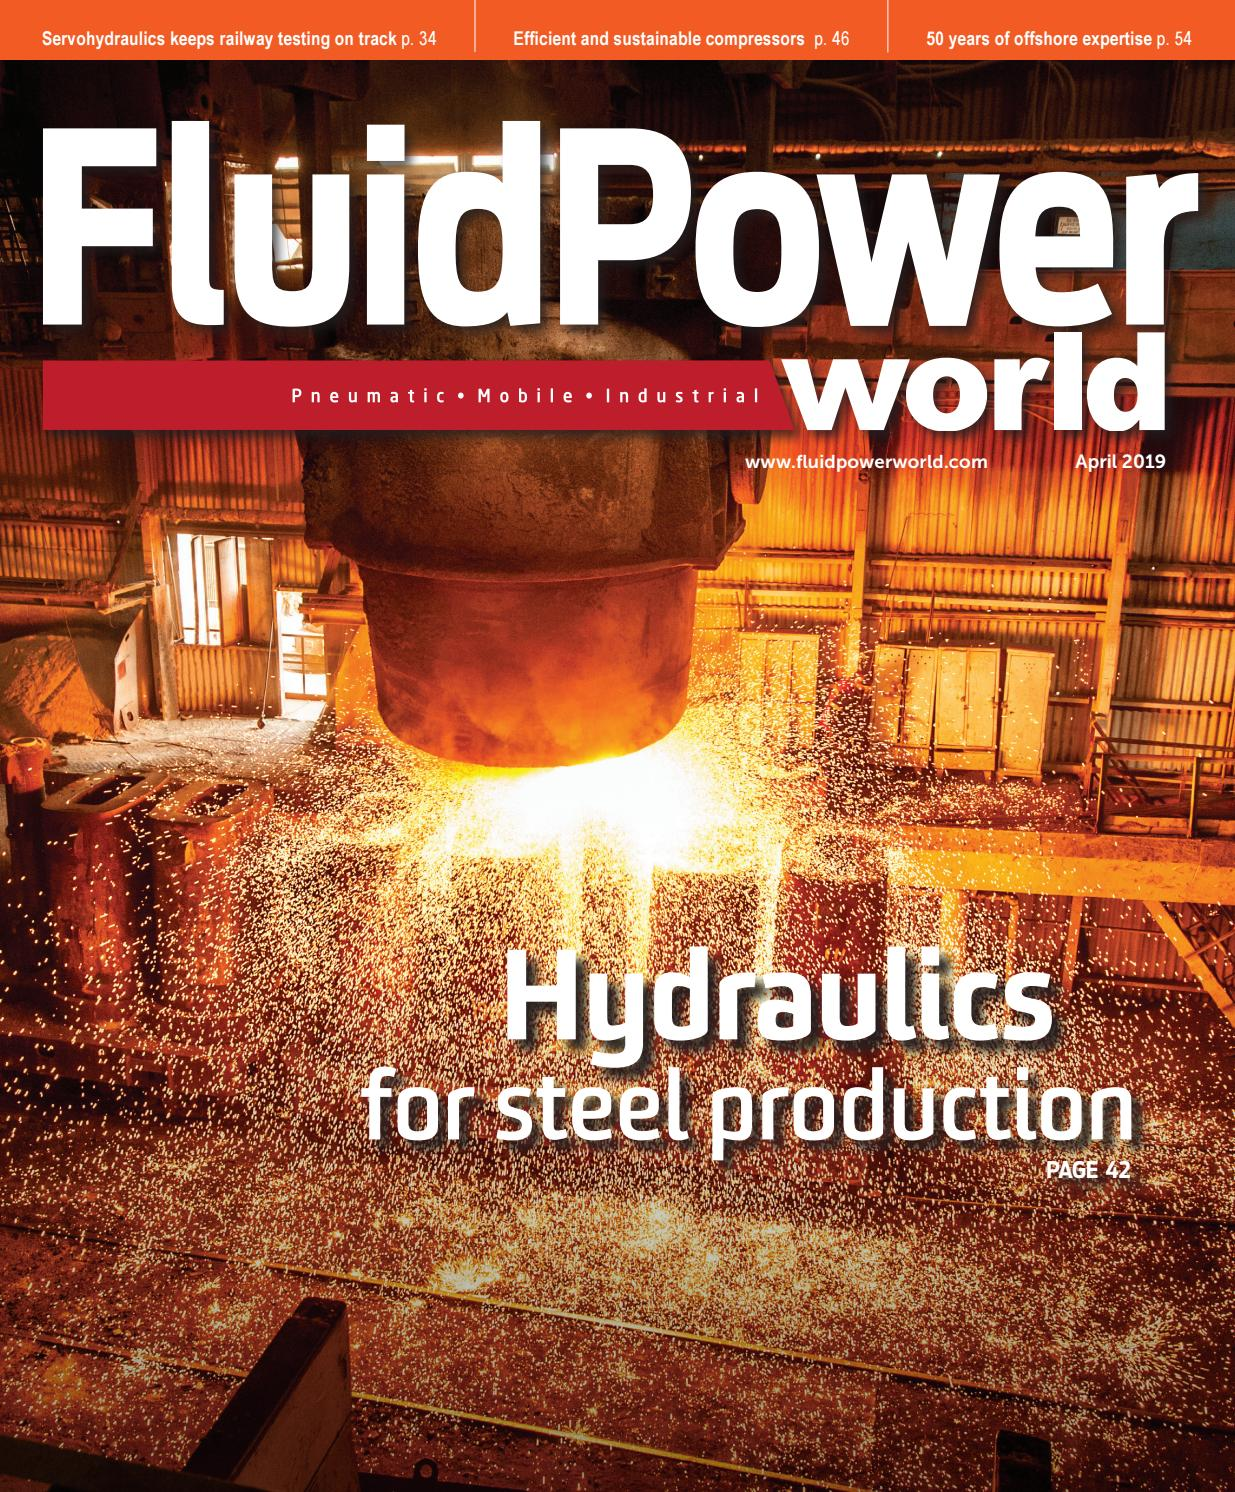 Fluid Power World April 2019 by WTWH Media LLC - issuu